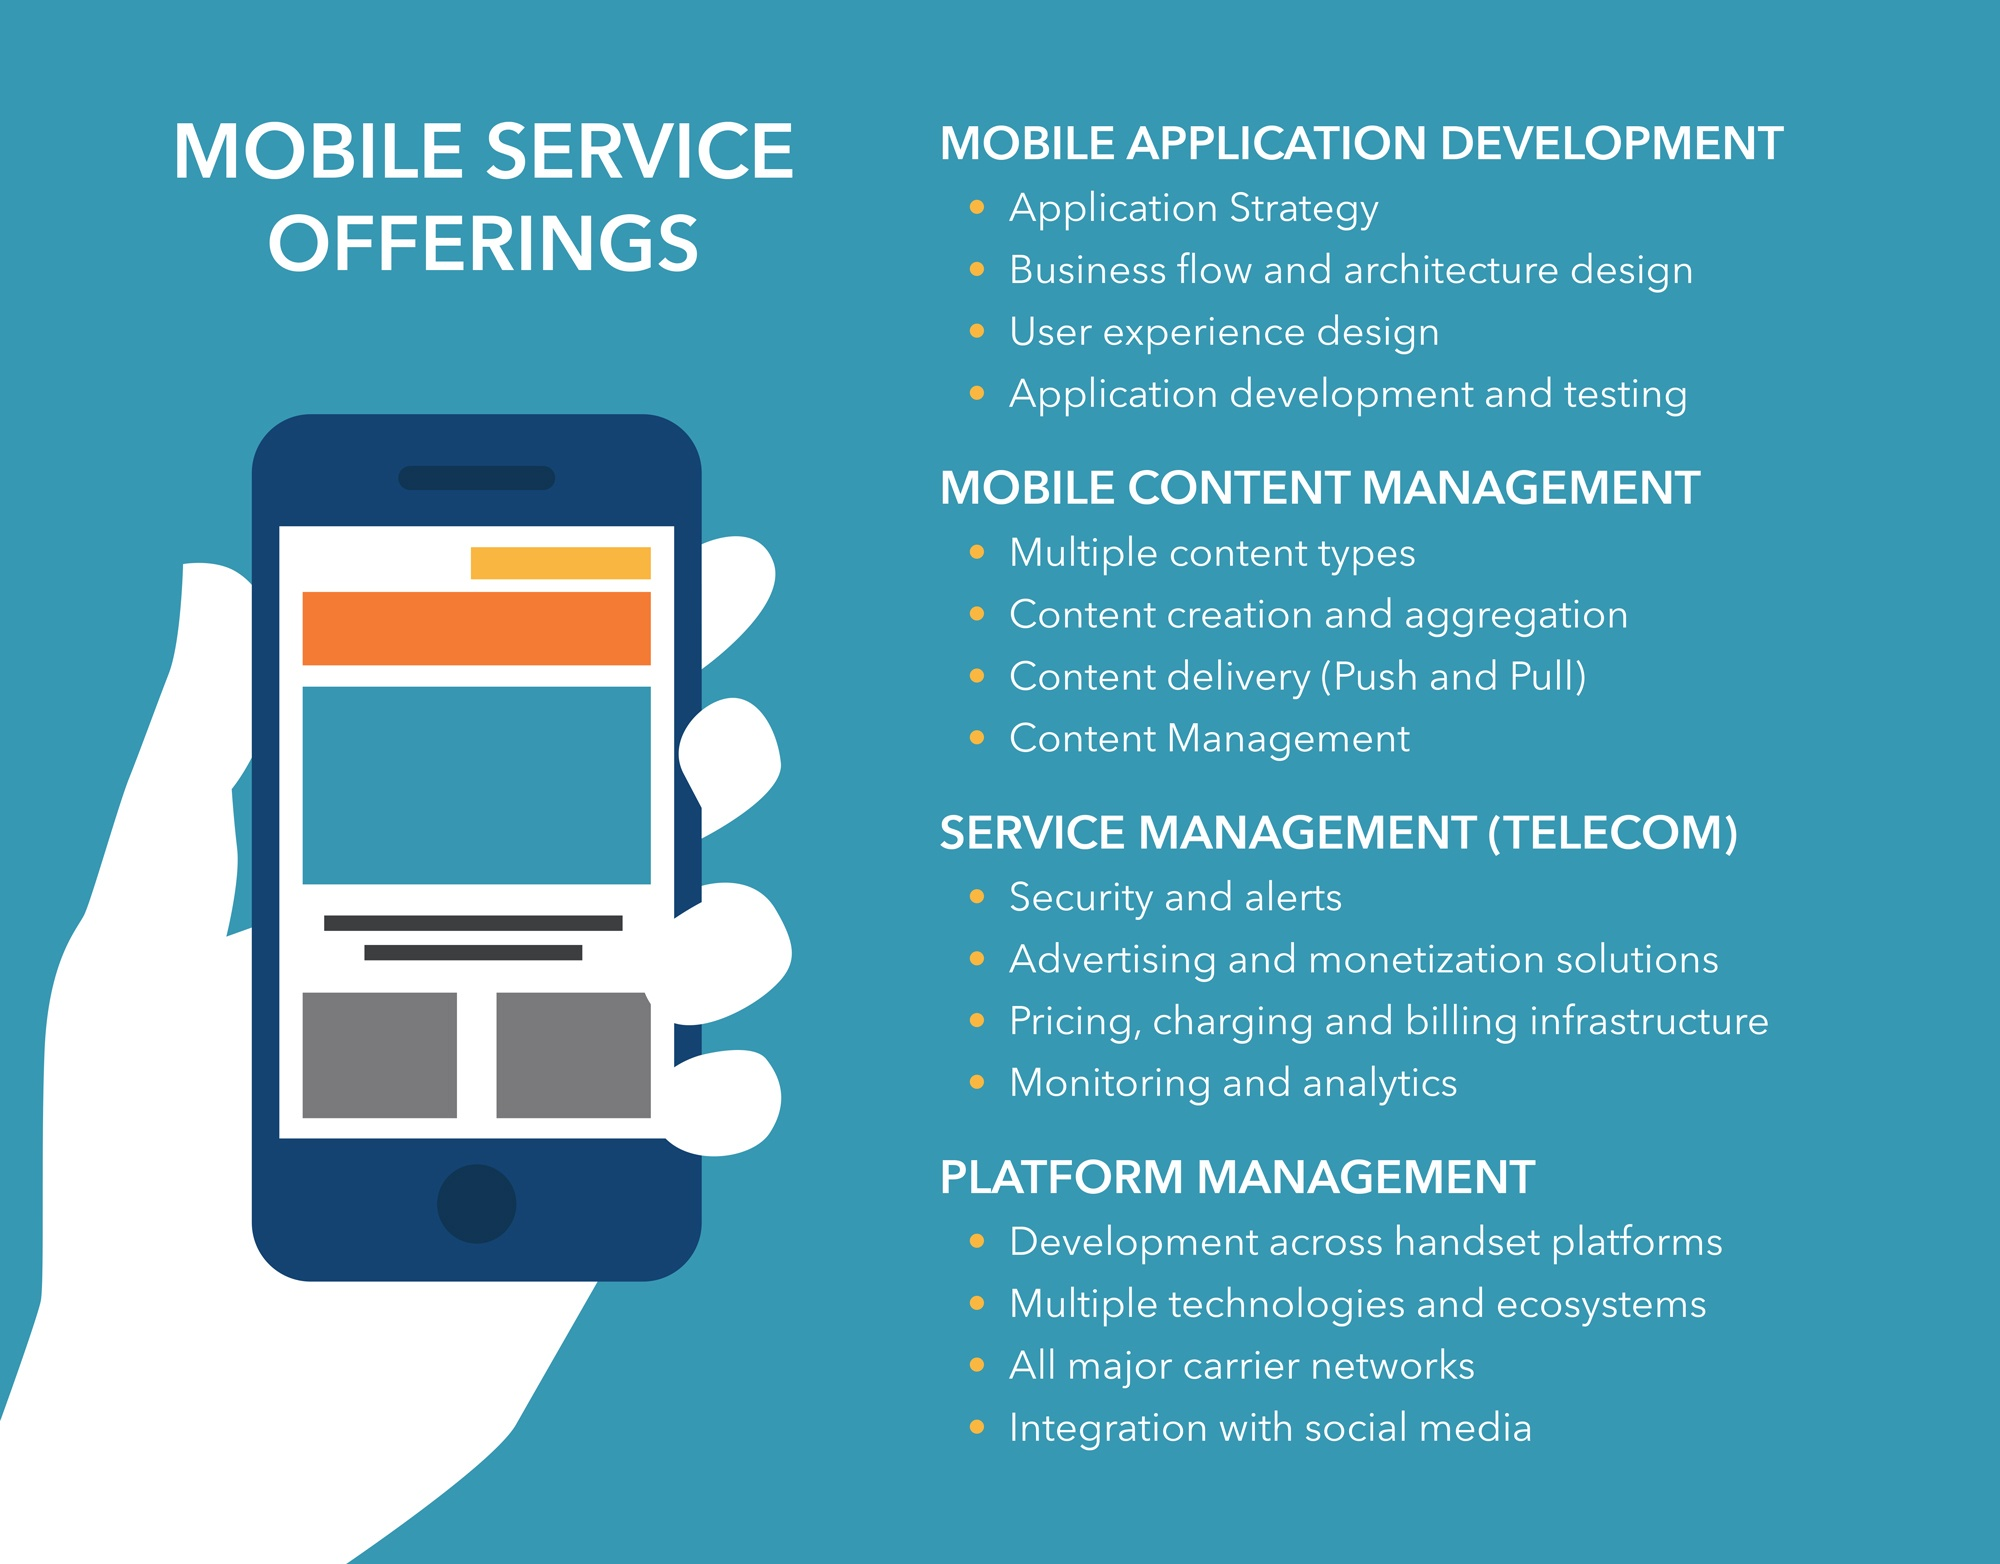 Vaco-SF-Mobile-Practice-Offerings